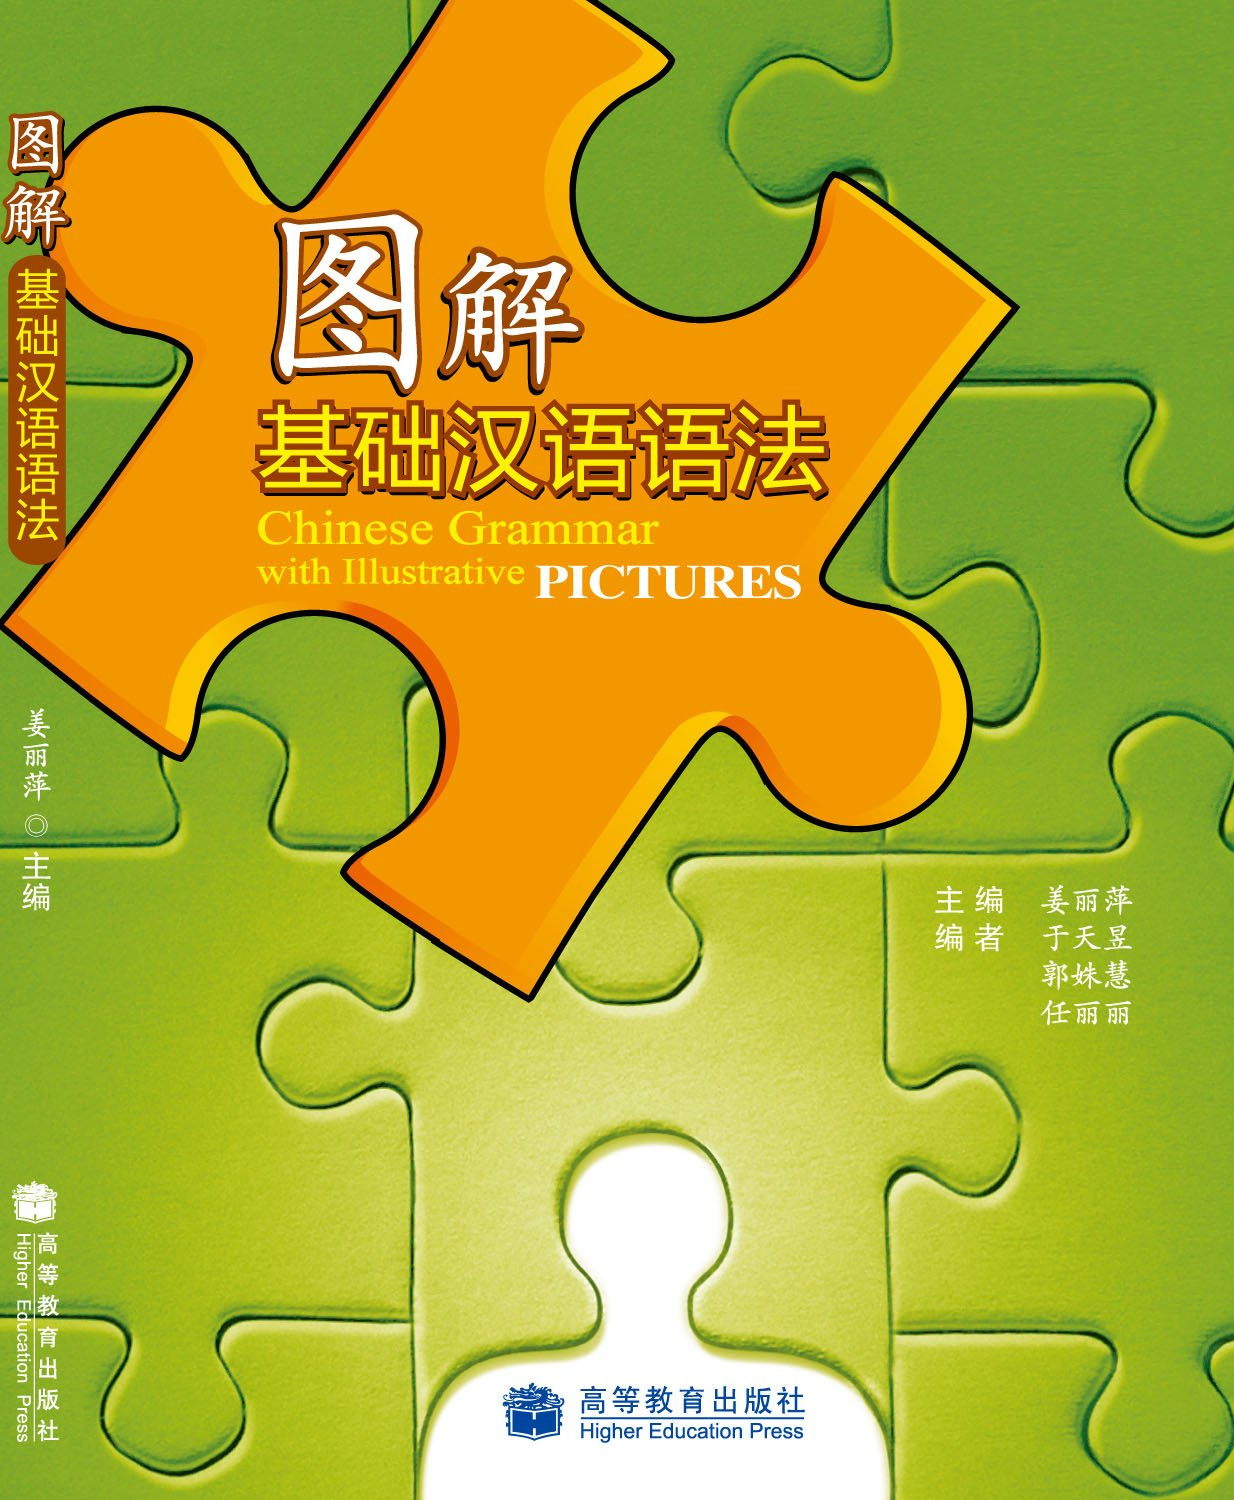 Download Chinese Grammar with Illustrative Pictures (Chinese Edition) ebook